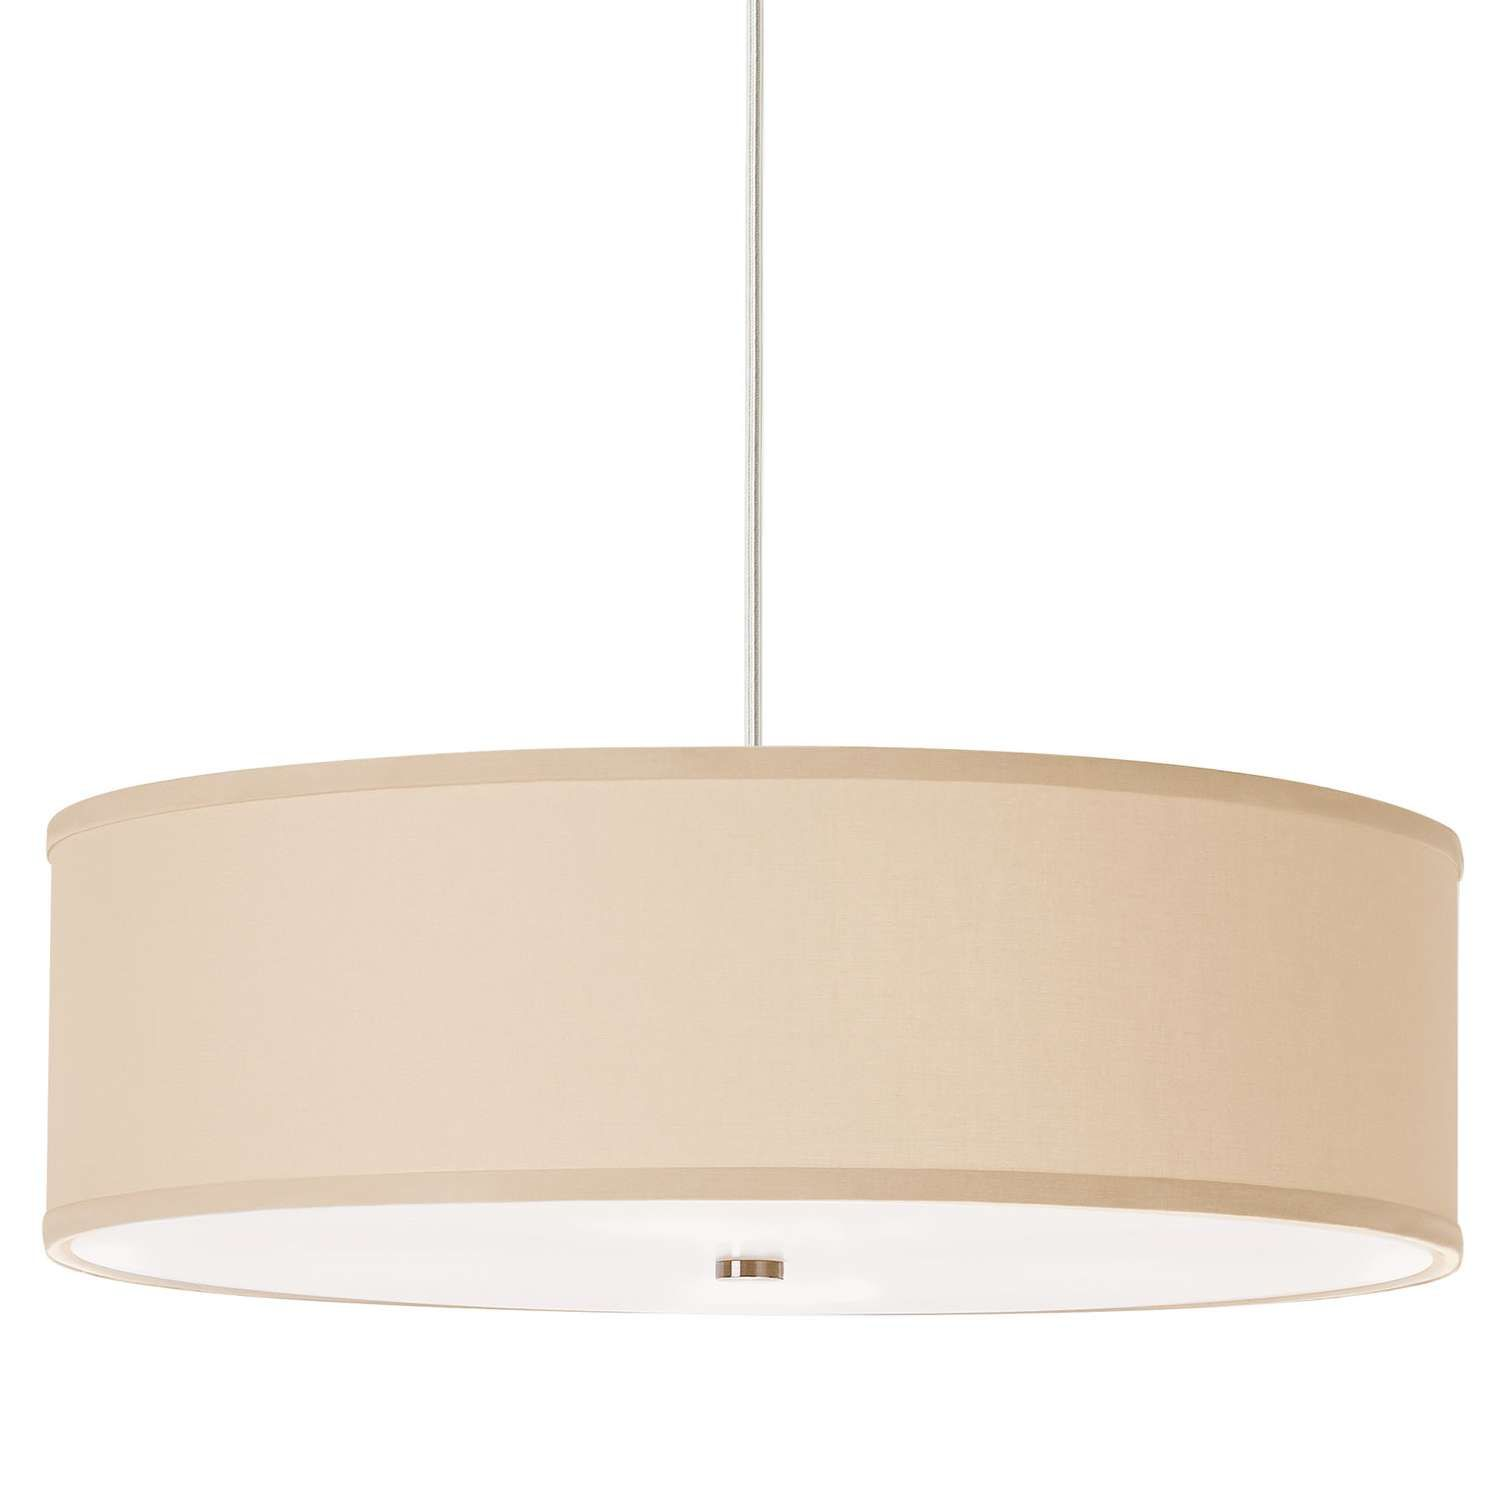 Mulberry pendant for ttrak glass diffuser pendants and diffusers